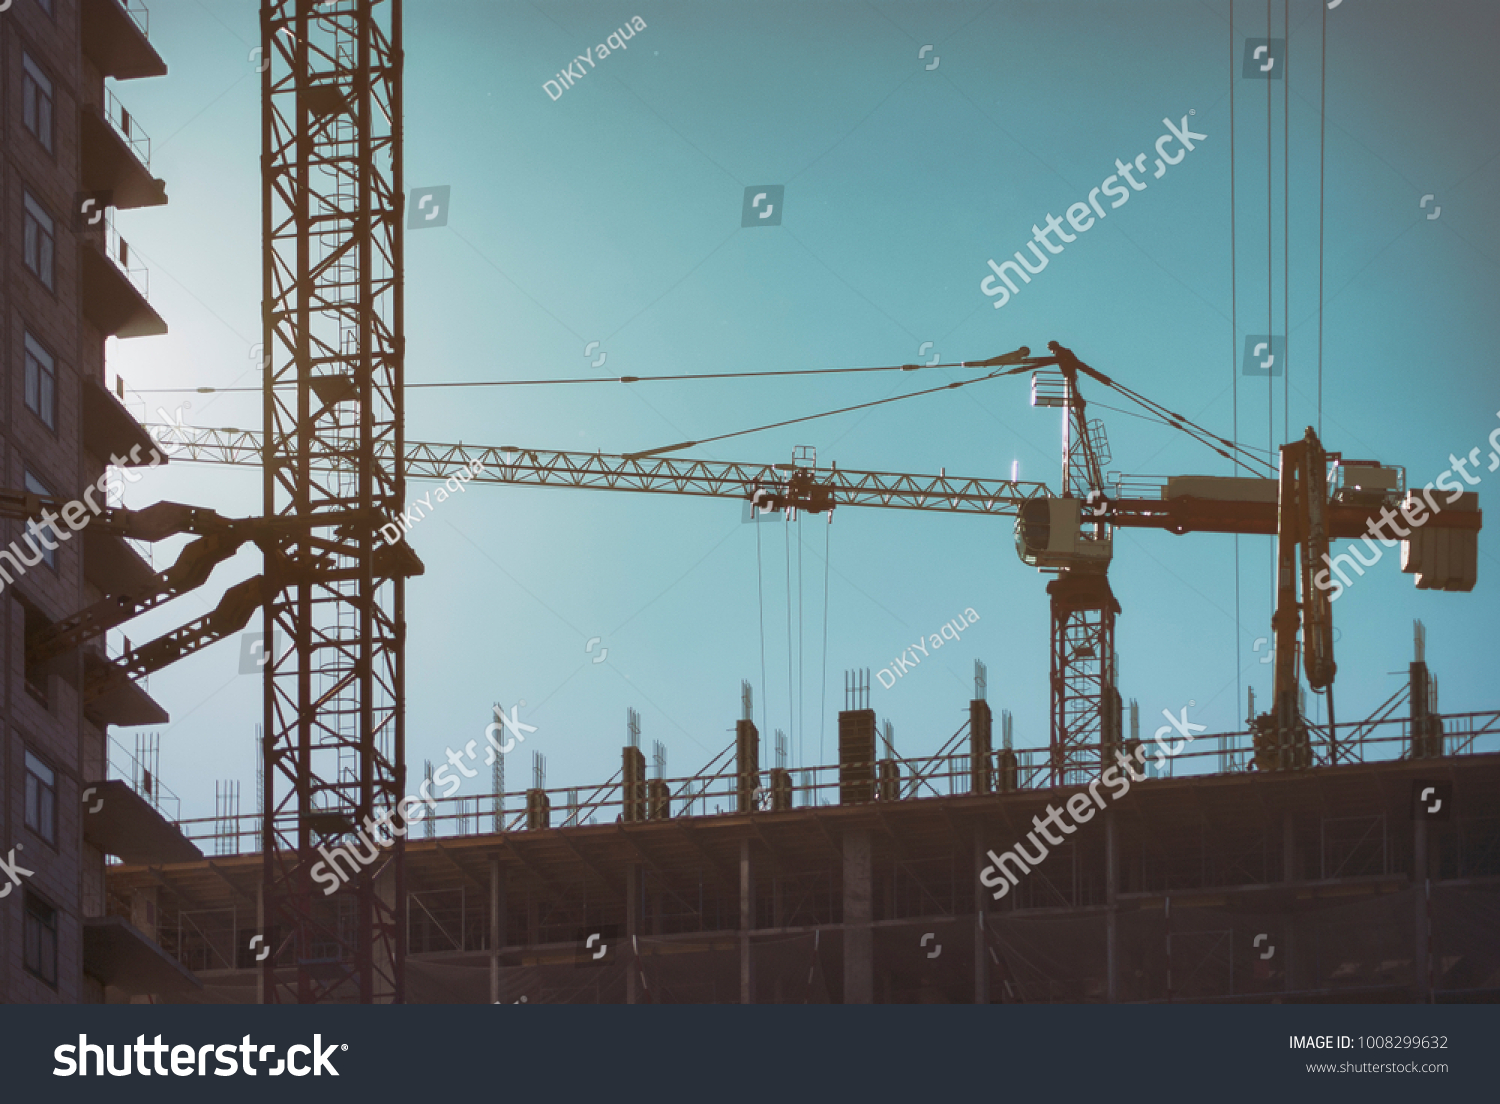 Industrial Construction Cranes Silhouettes Over Sunset Ez Canvas Electrical Wiring Installation In A Multistory Building